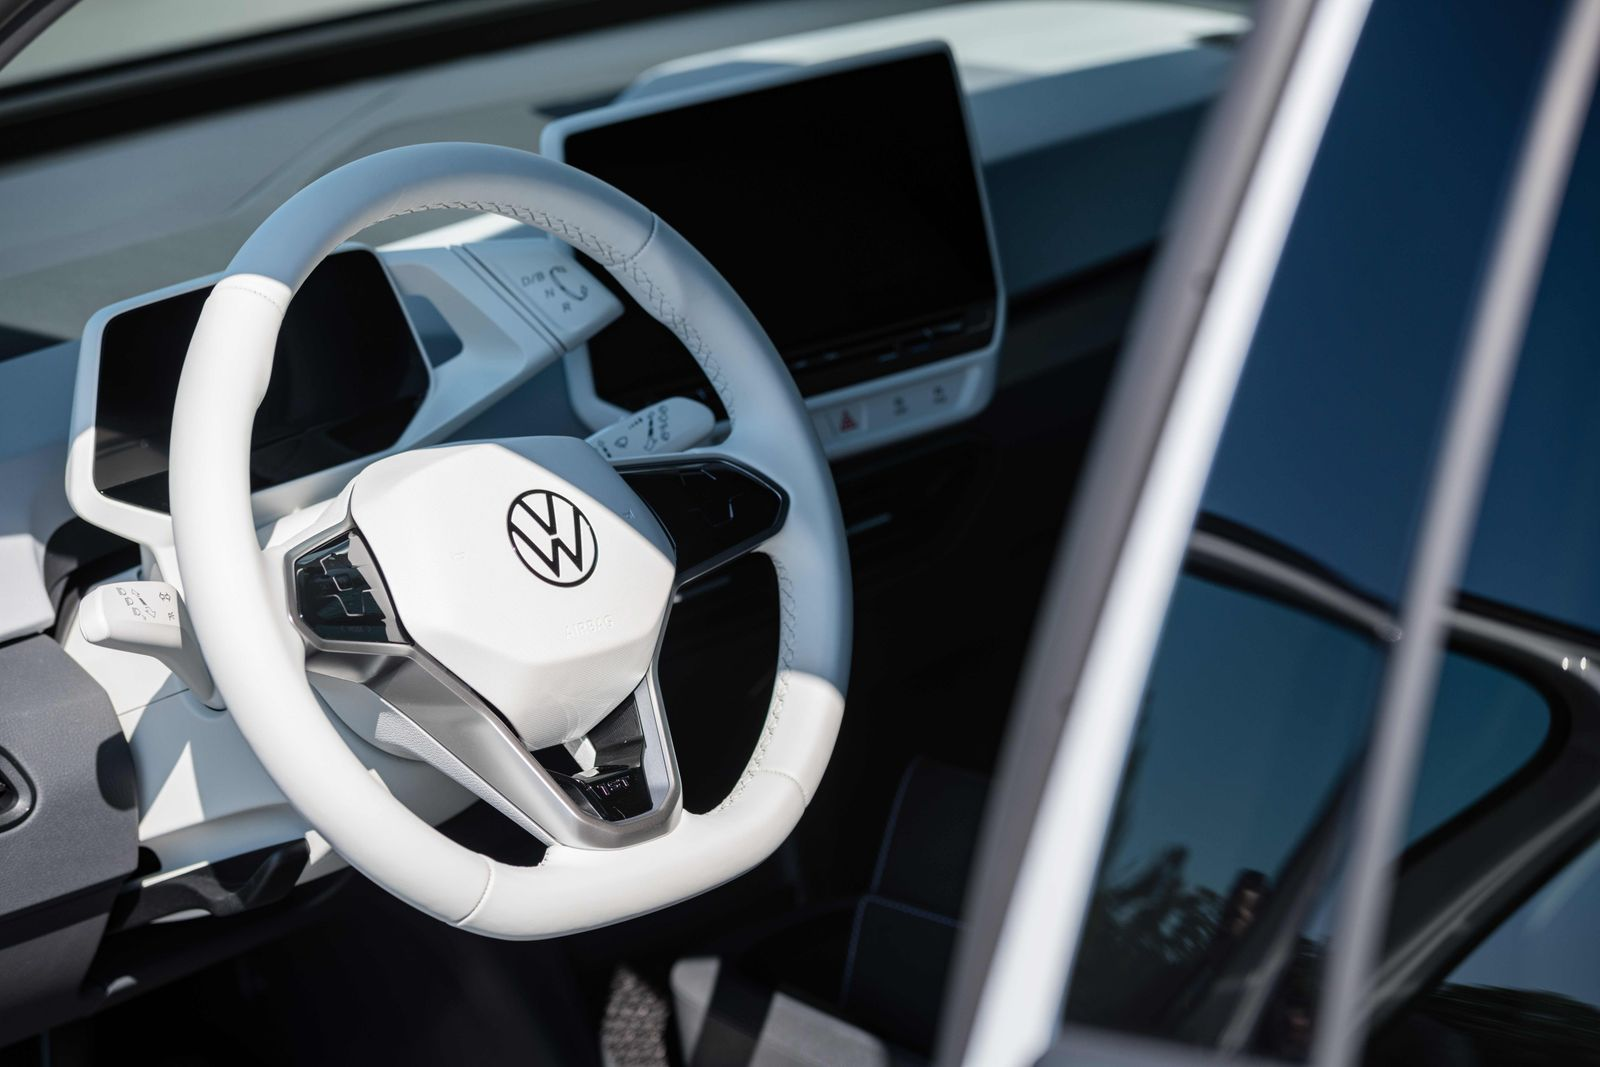 GERMANY-AUTO-ELECTRIC-VOLKSWAGEN-ID3